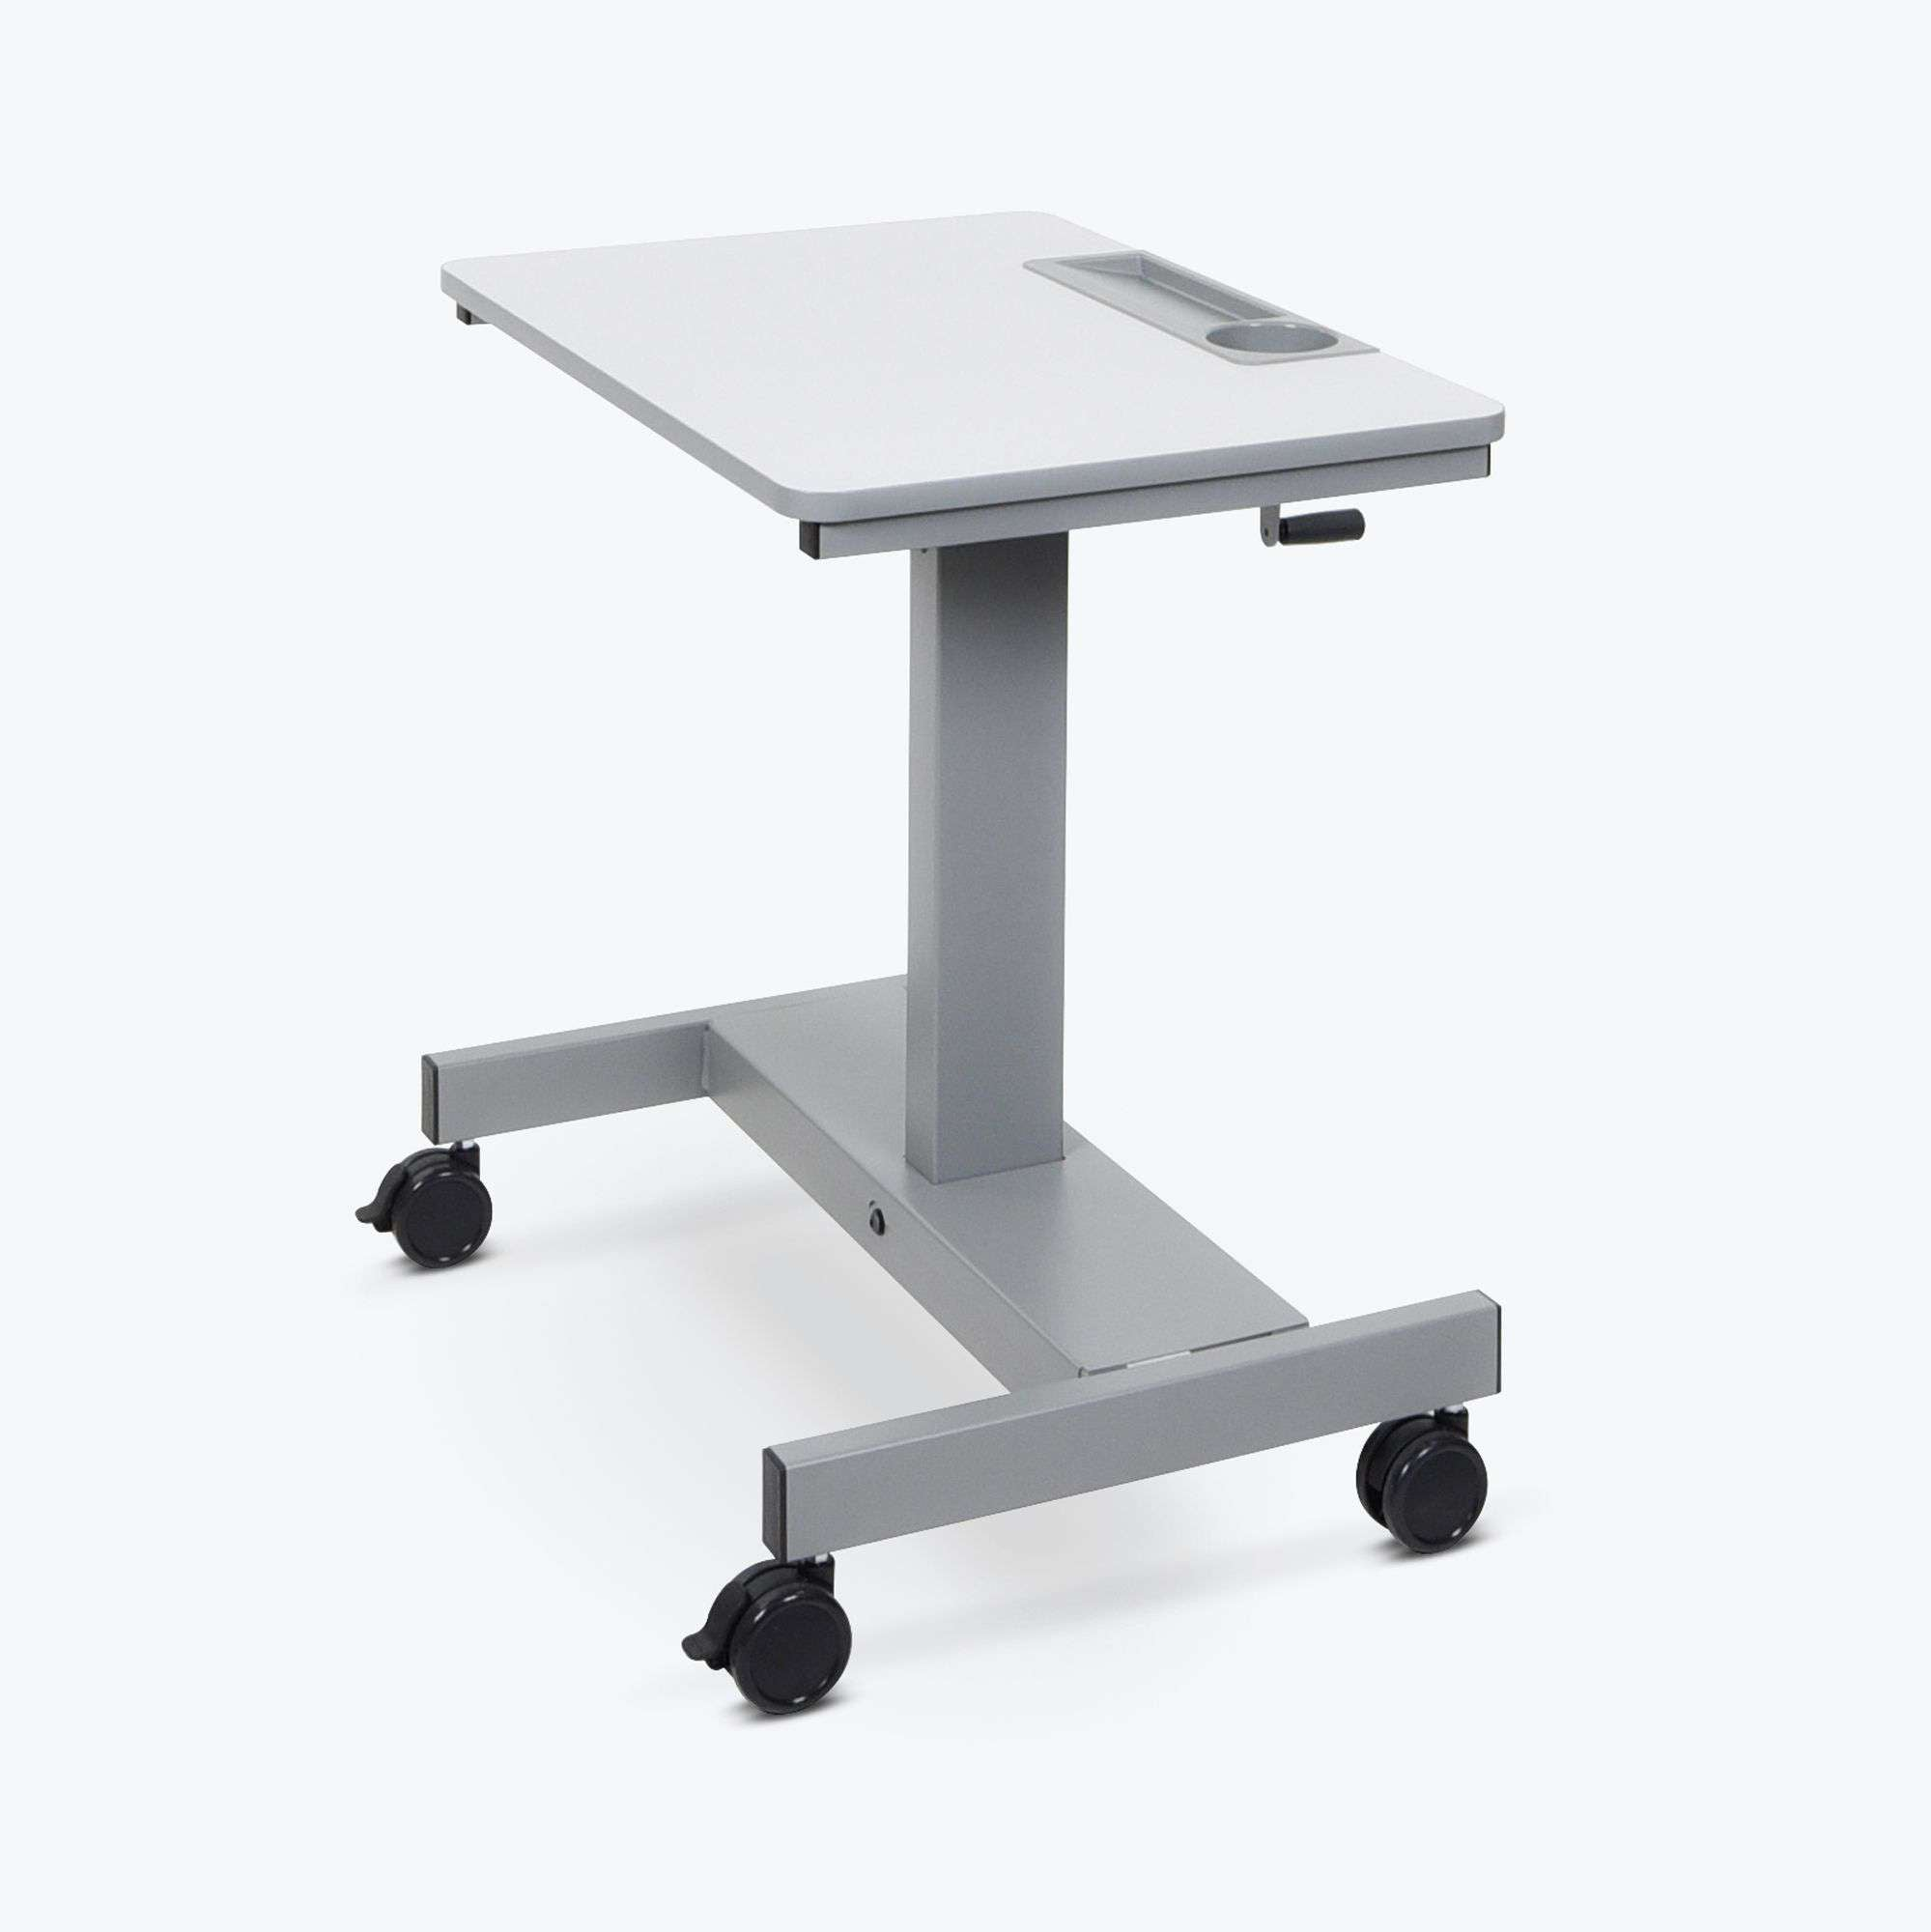 Student Desk - Sit Stand Desk with Crank Handle Short Version